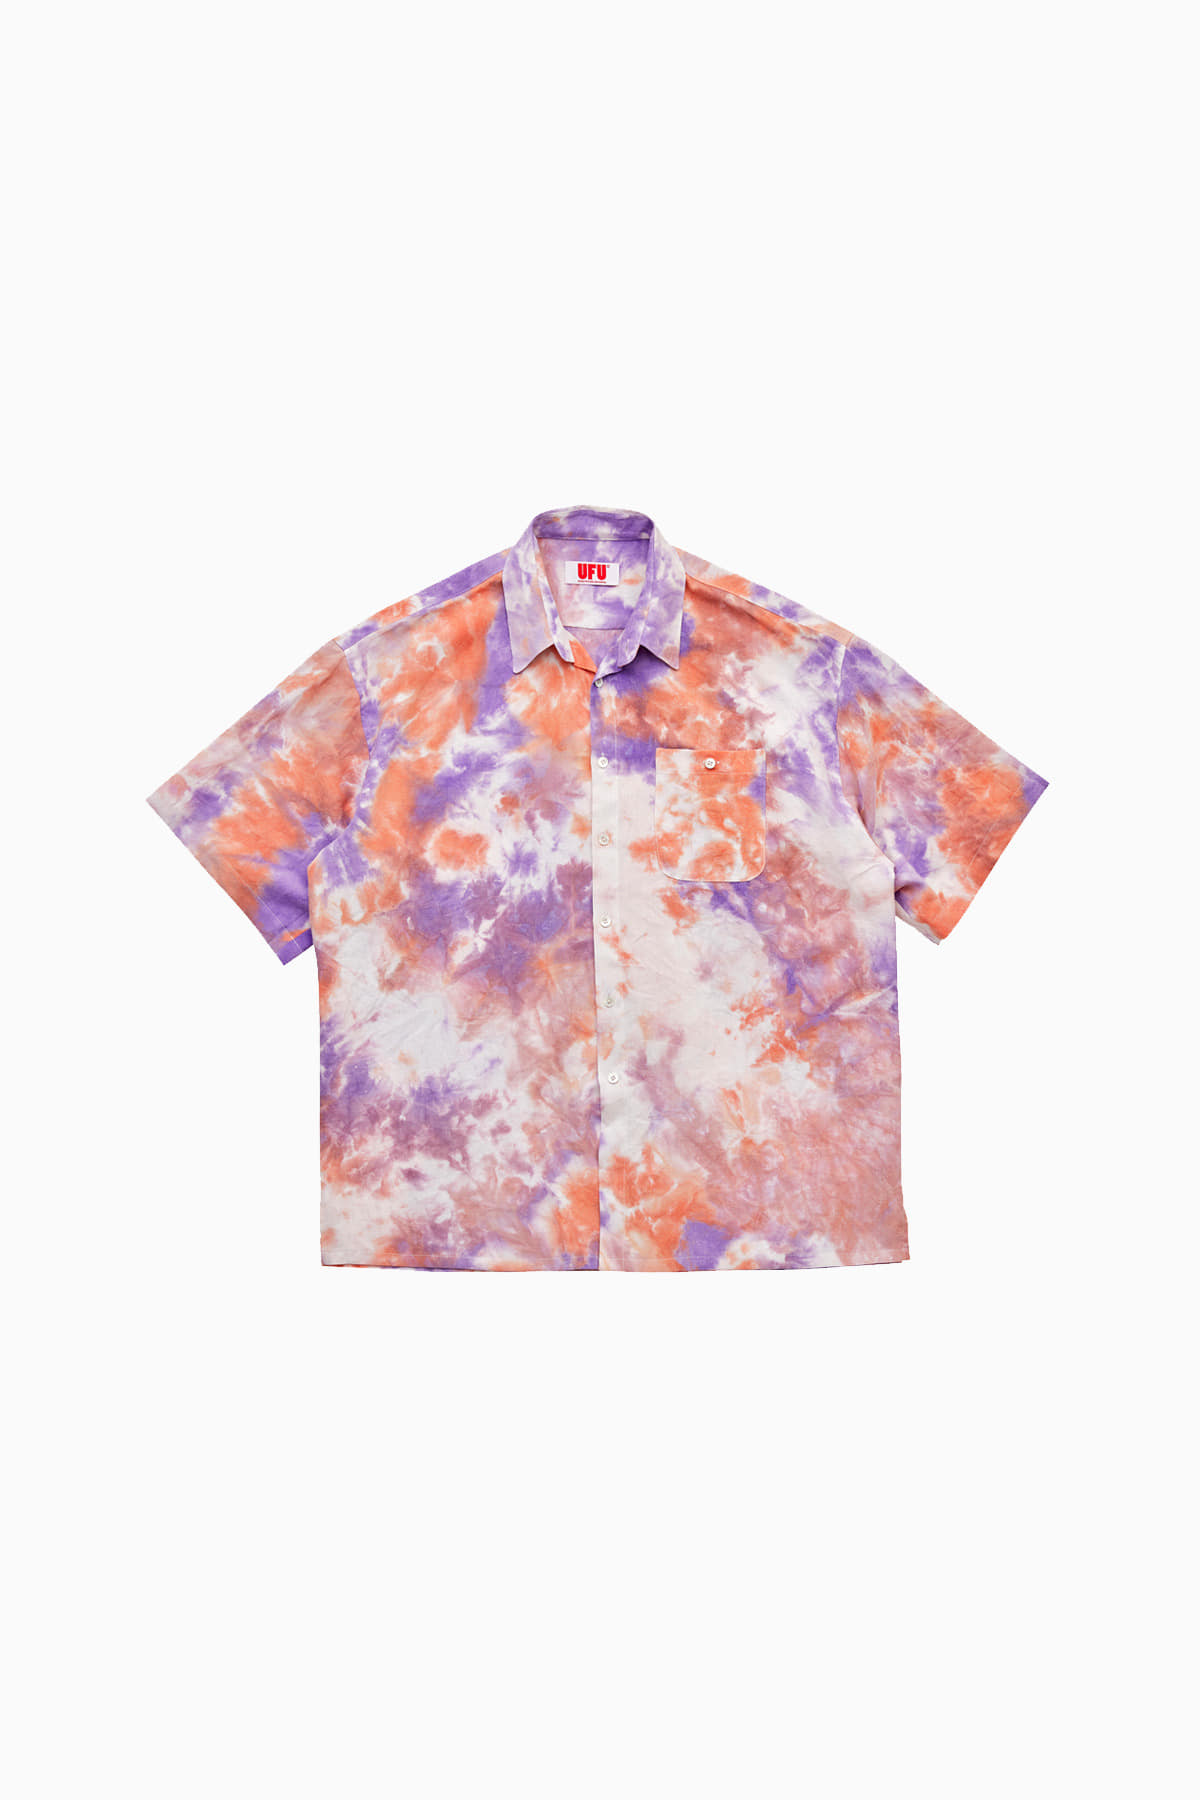 TIE DYE SHIRT_ORANGE